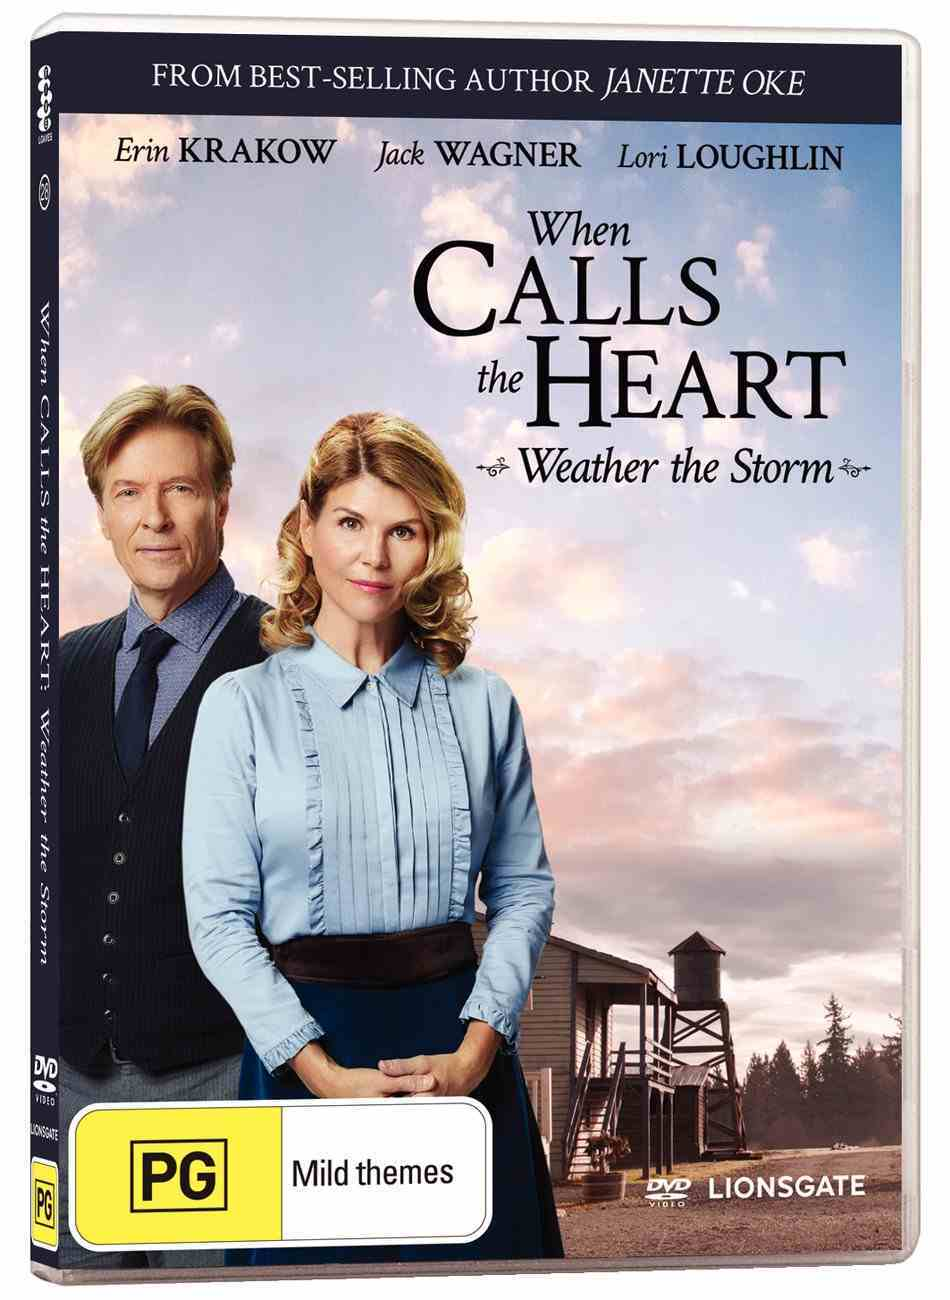 When Calls the Heart #28: Weather the Storm DVD